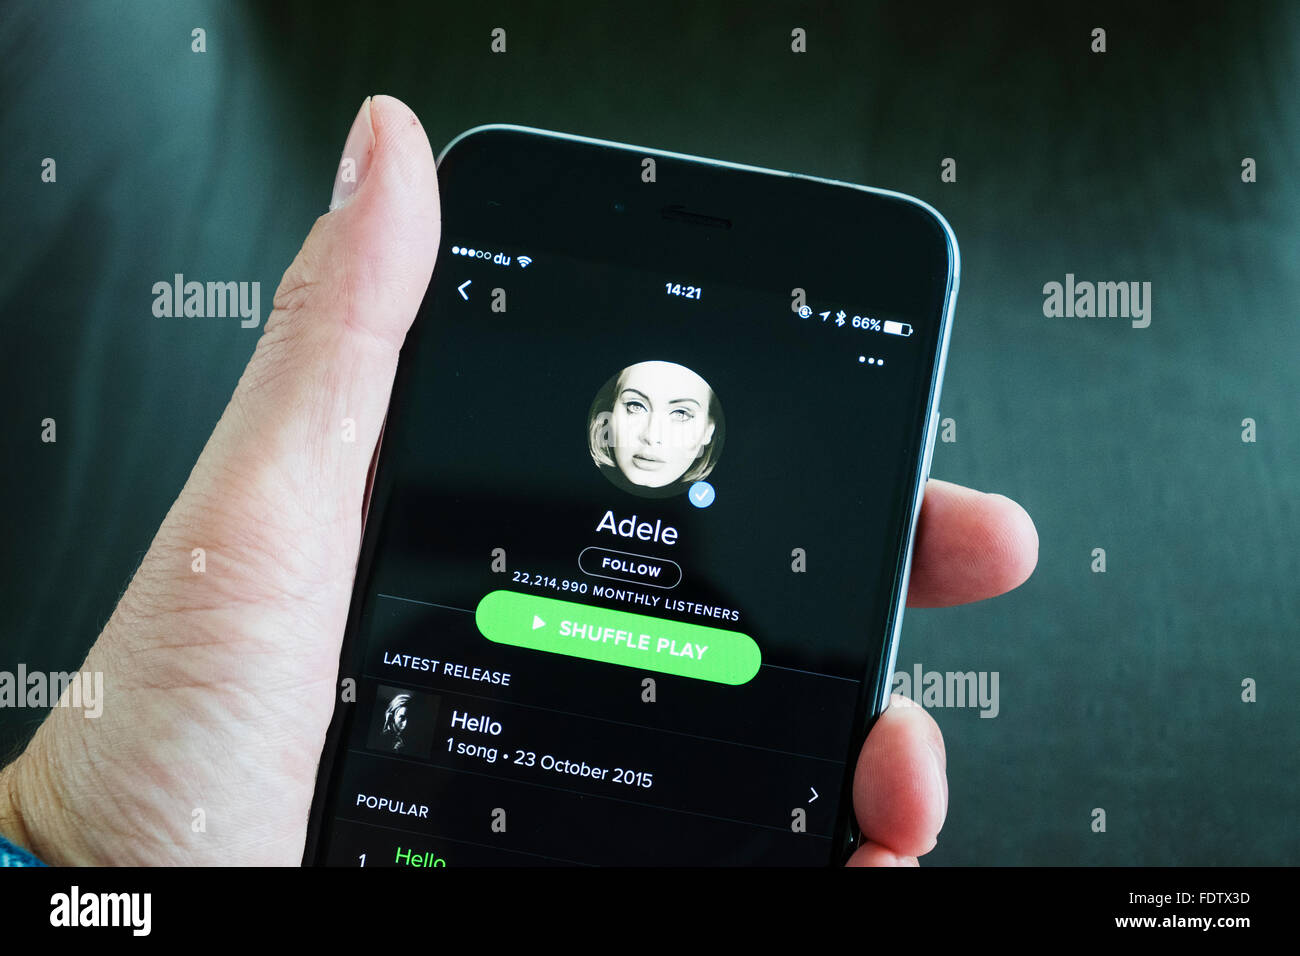 Spotify online music streaming app showing Adele on an iPhone 6 plus smart phone - Stock Image